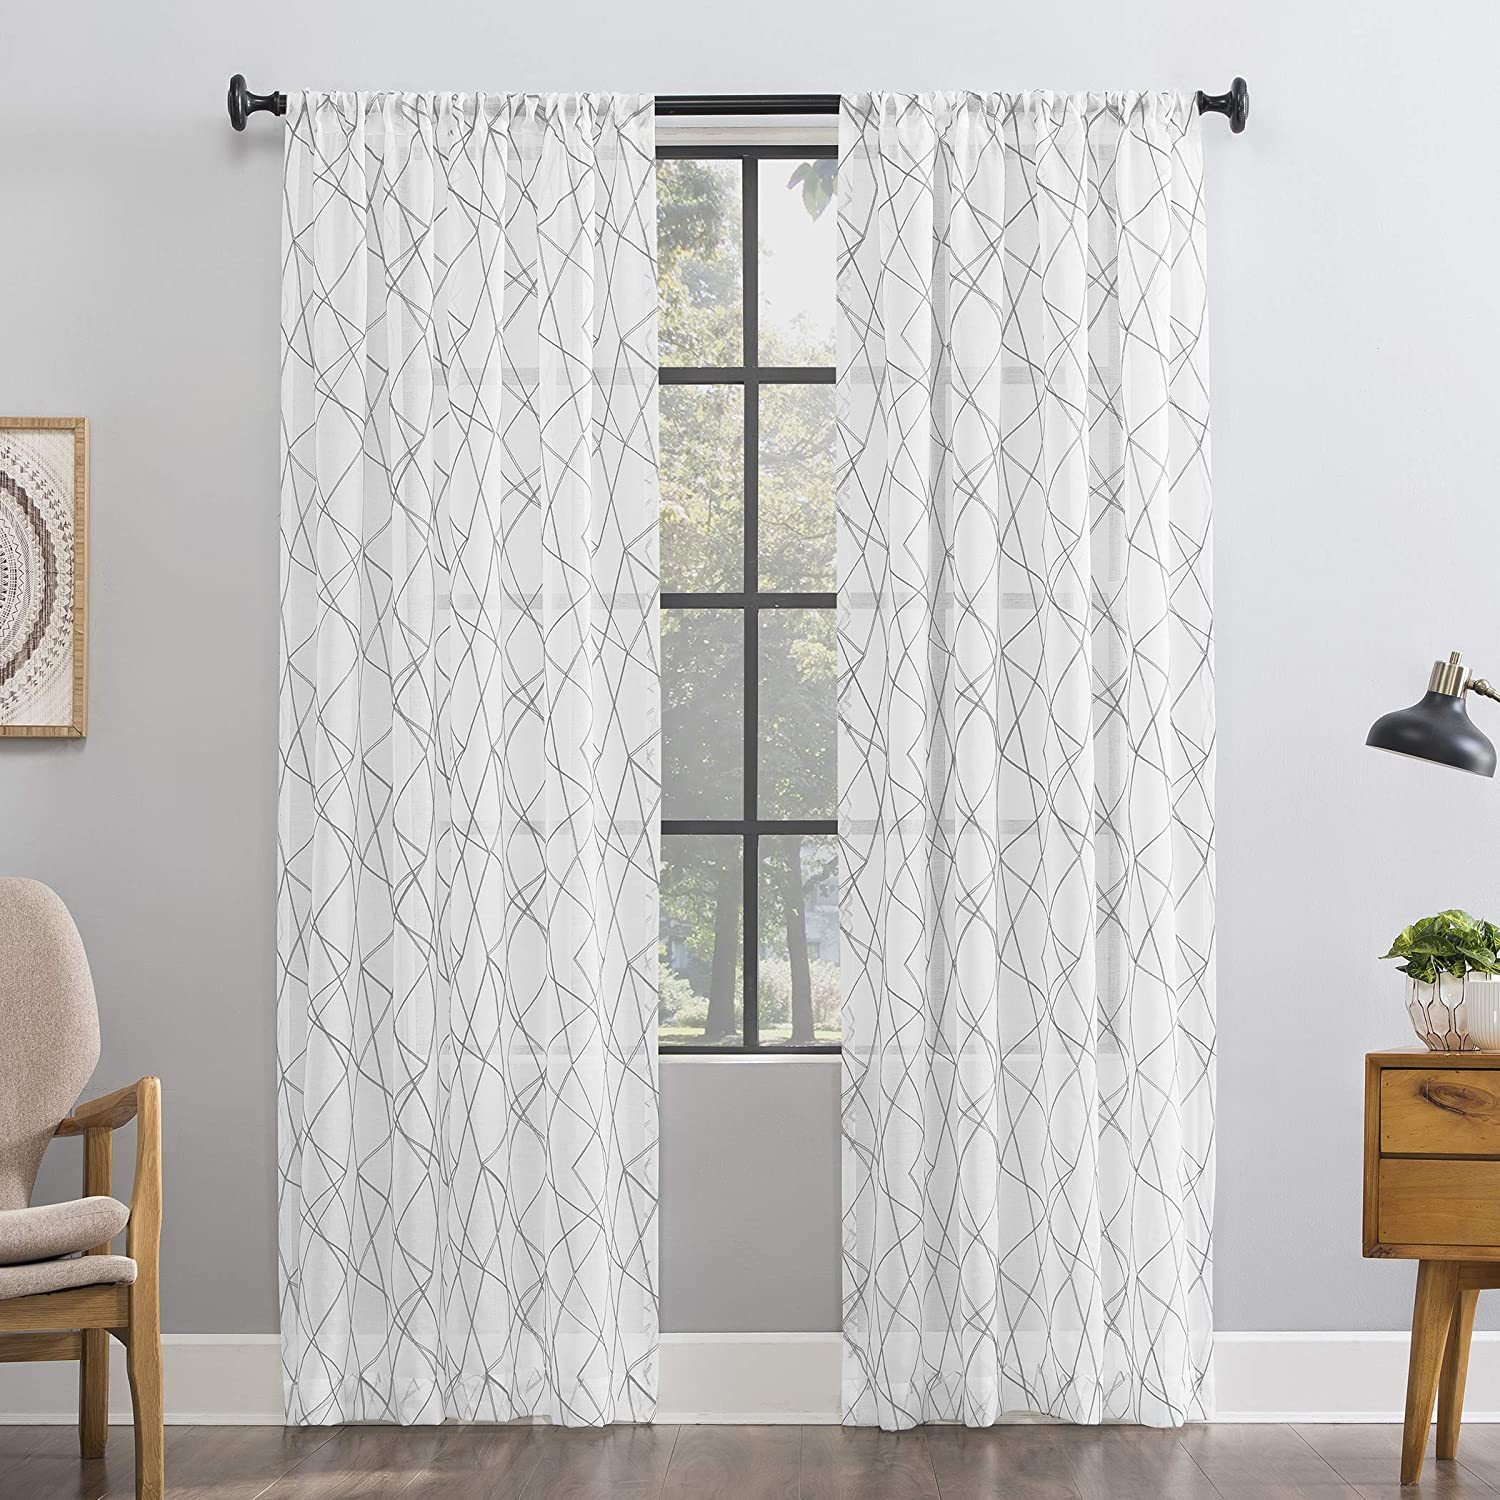 No. 918 Fraction 2-Pack Mid-Century Modern Geometric Embroidery Semi-Sheer Rod Pocket Curtain Panel Pair, 50